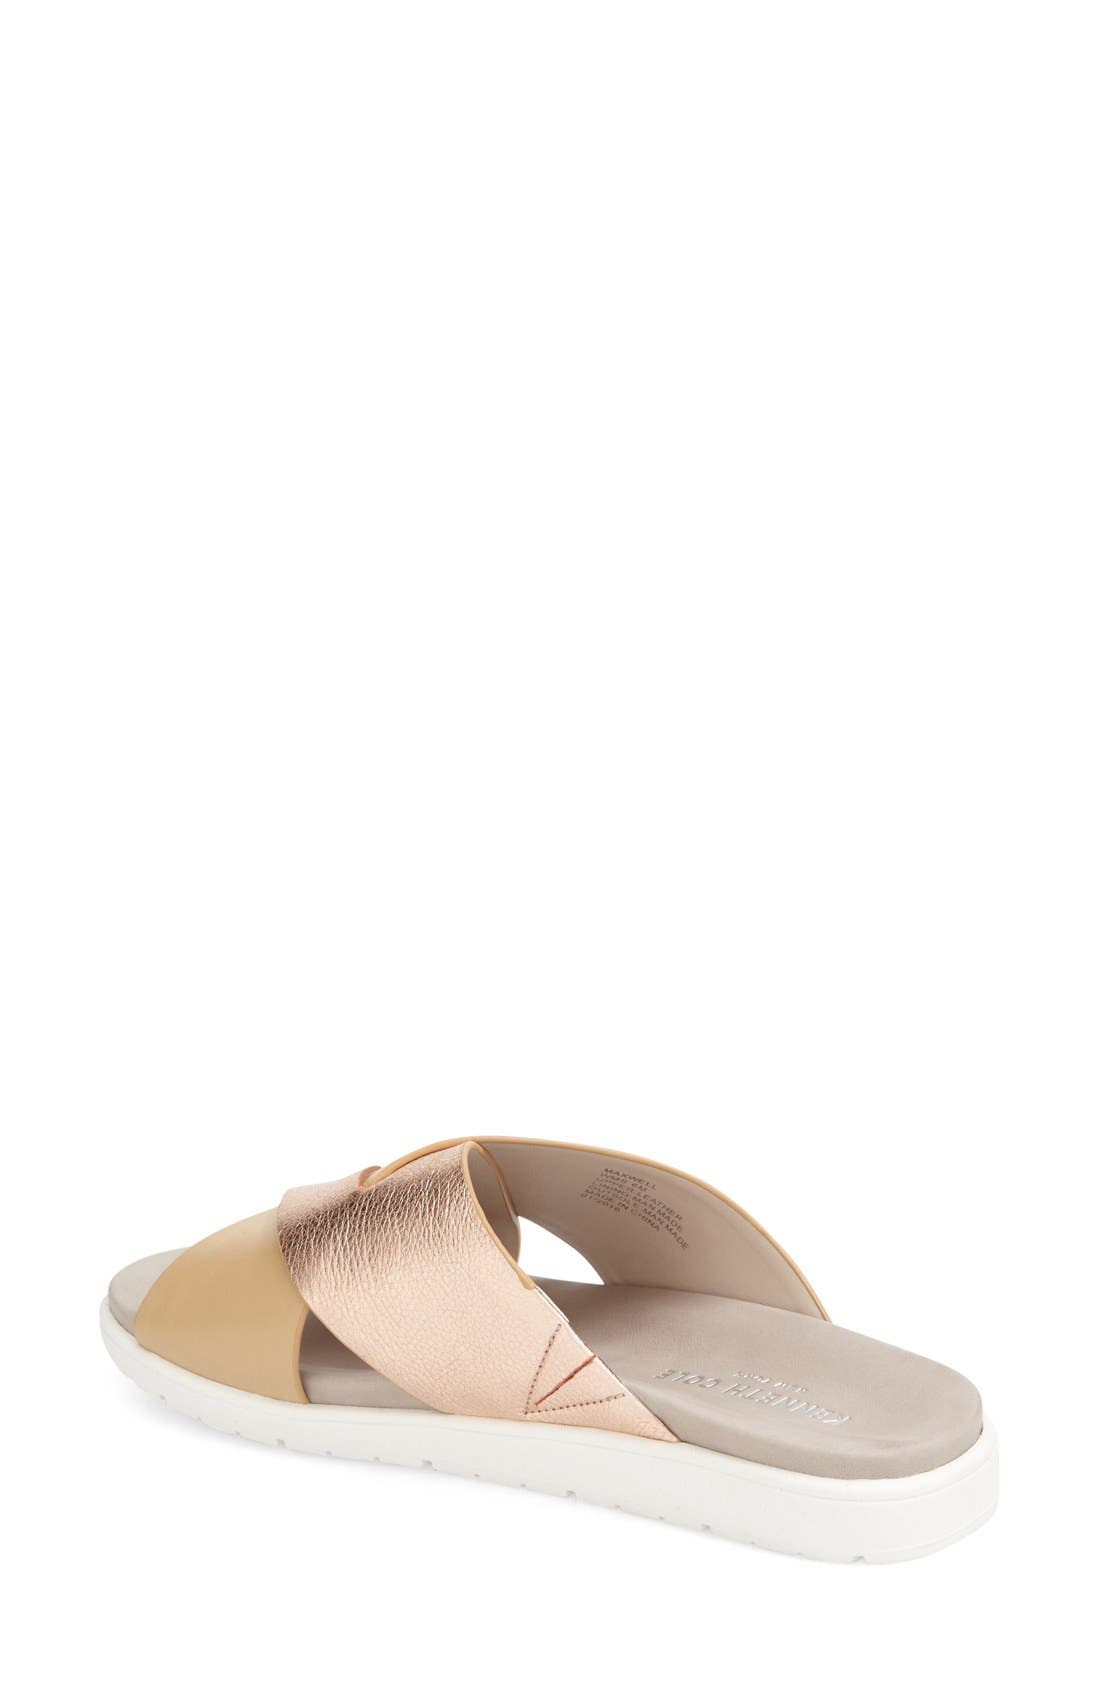 'Maxwell' Sandal,                             Alternate thumbnail 2, color,                             Rose Gold/ Nude Leather